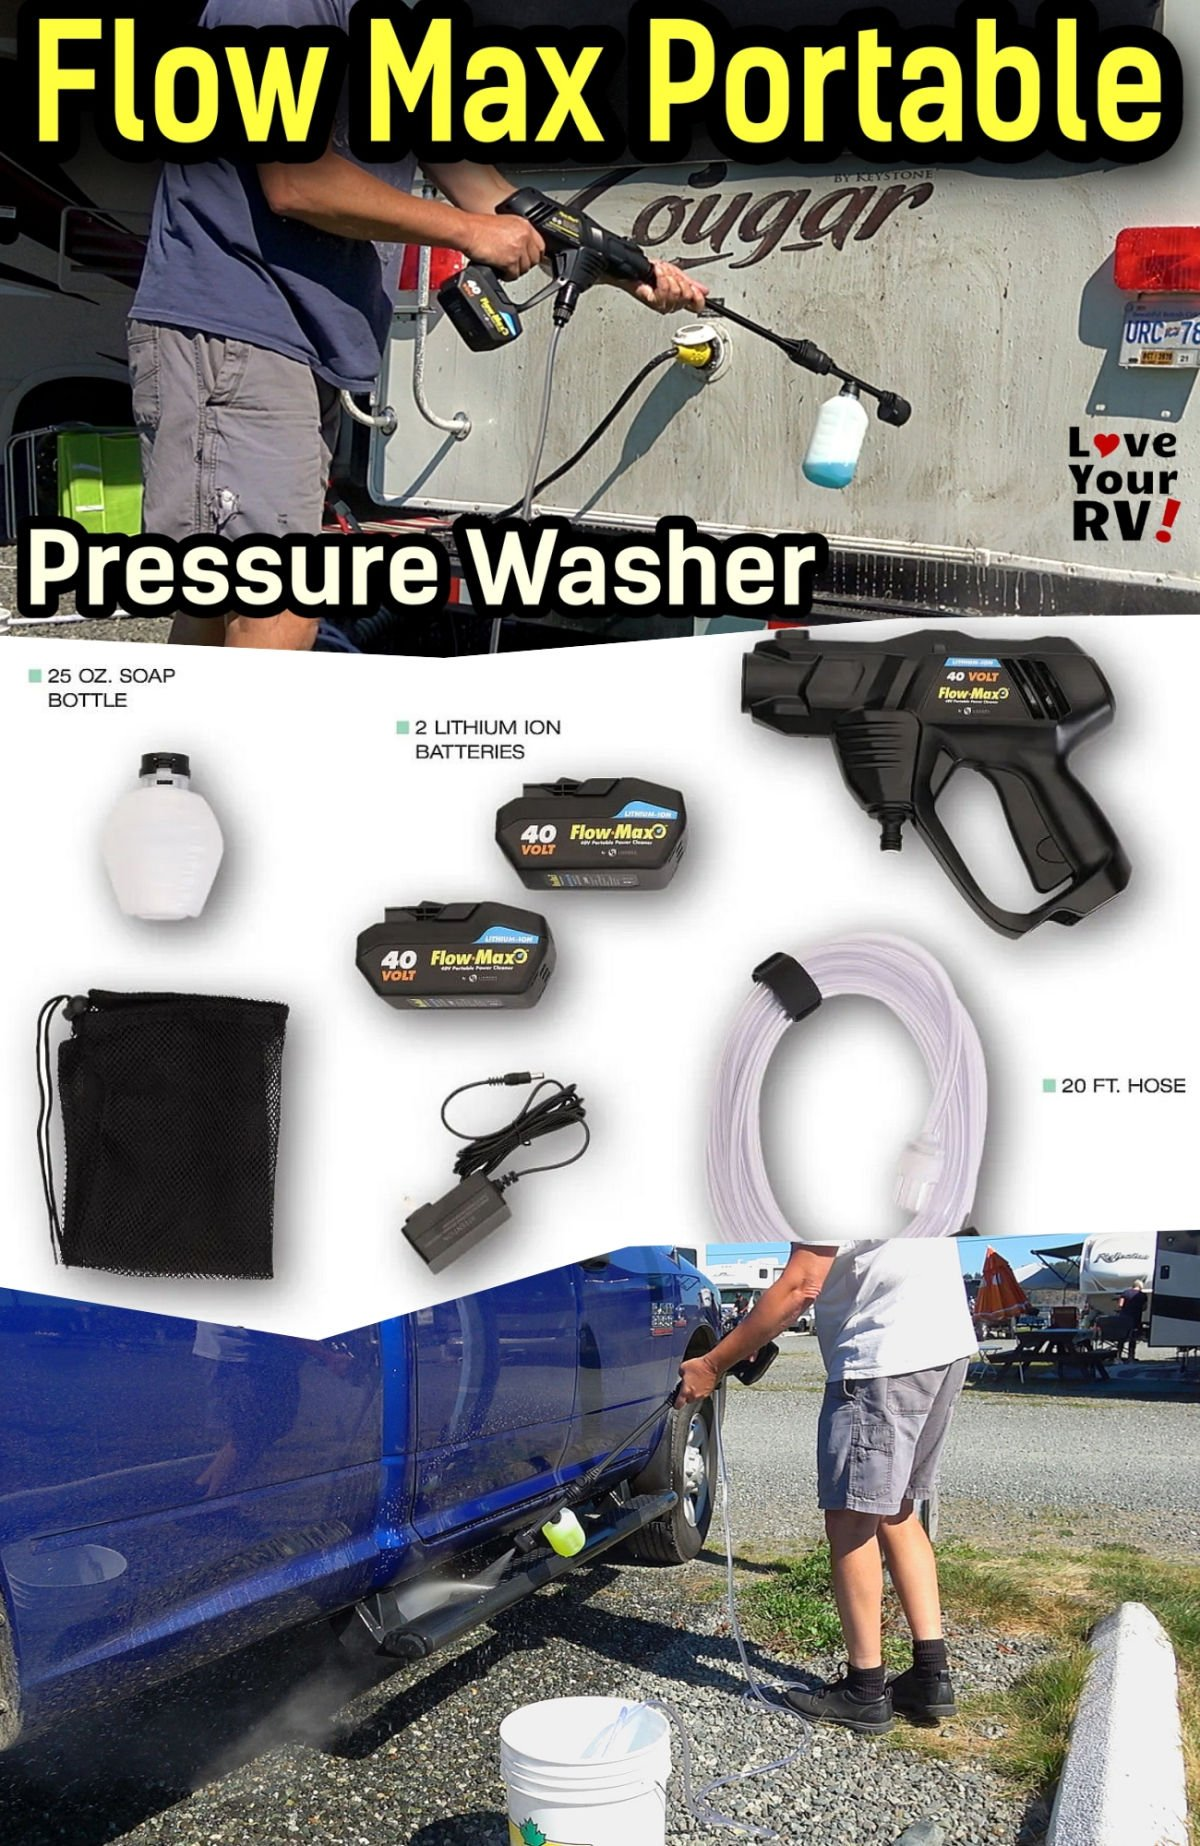 RV Gadgets - Demo and Review of the Flow Max 40V Portable Power Washer from Lippert Components